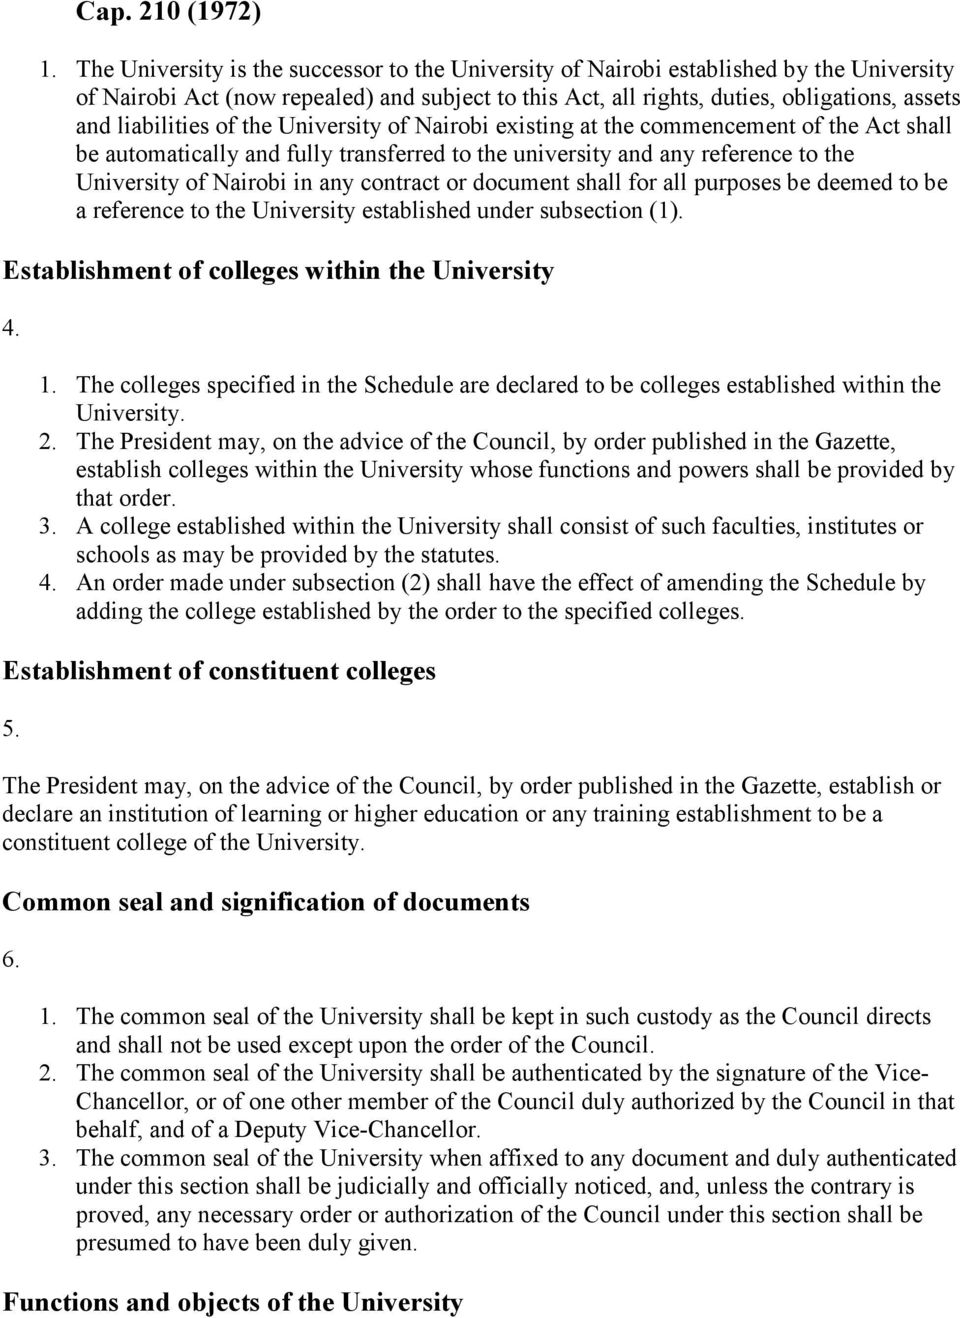 liabilities of the University of Nairobi existing at the commencement of the Act shall be automatically and fully transferred to the university and any reference to the University of Nairobi in any